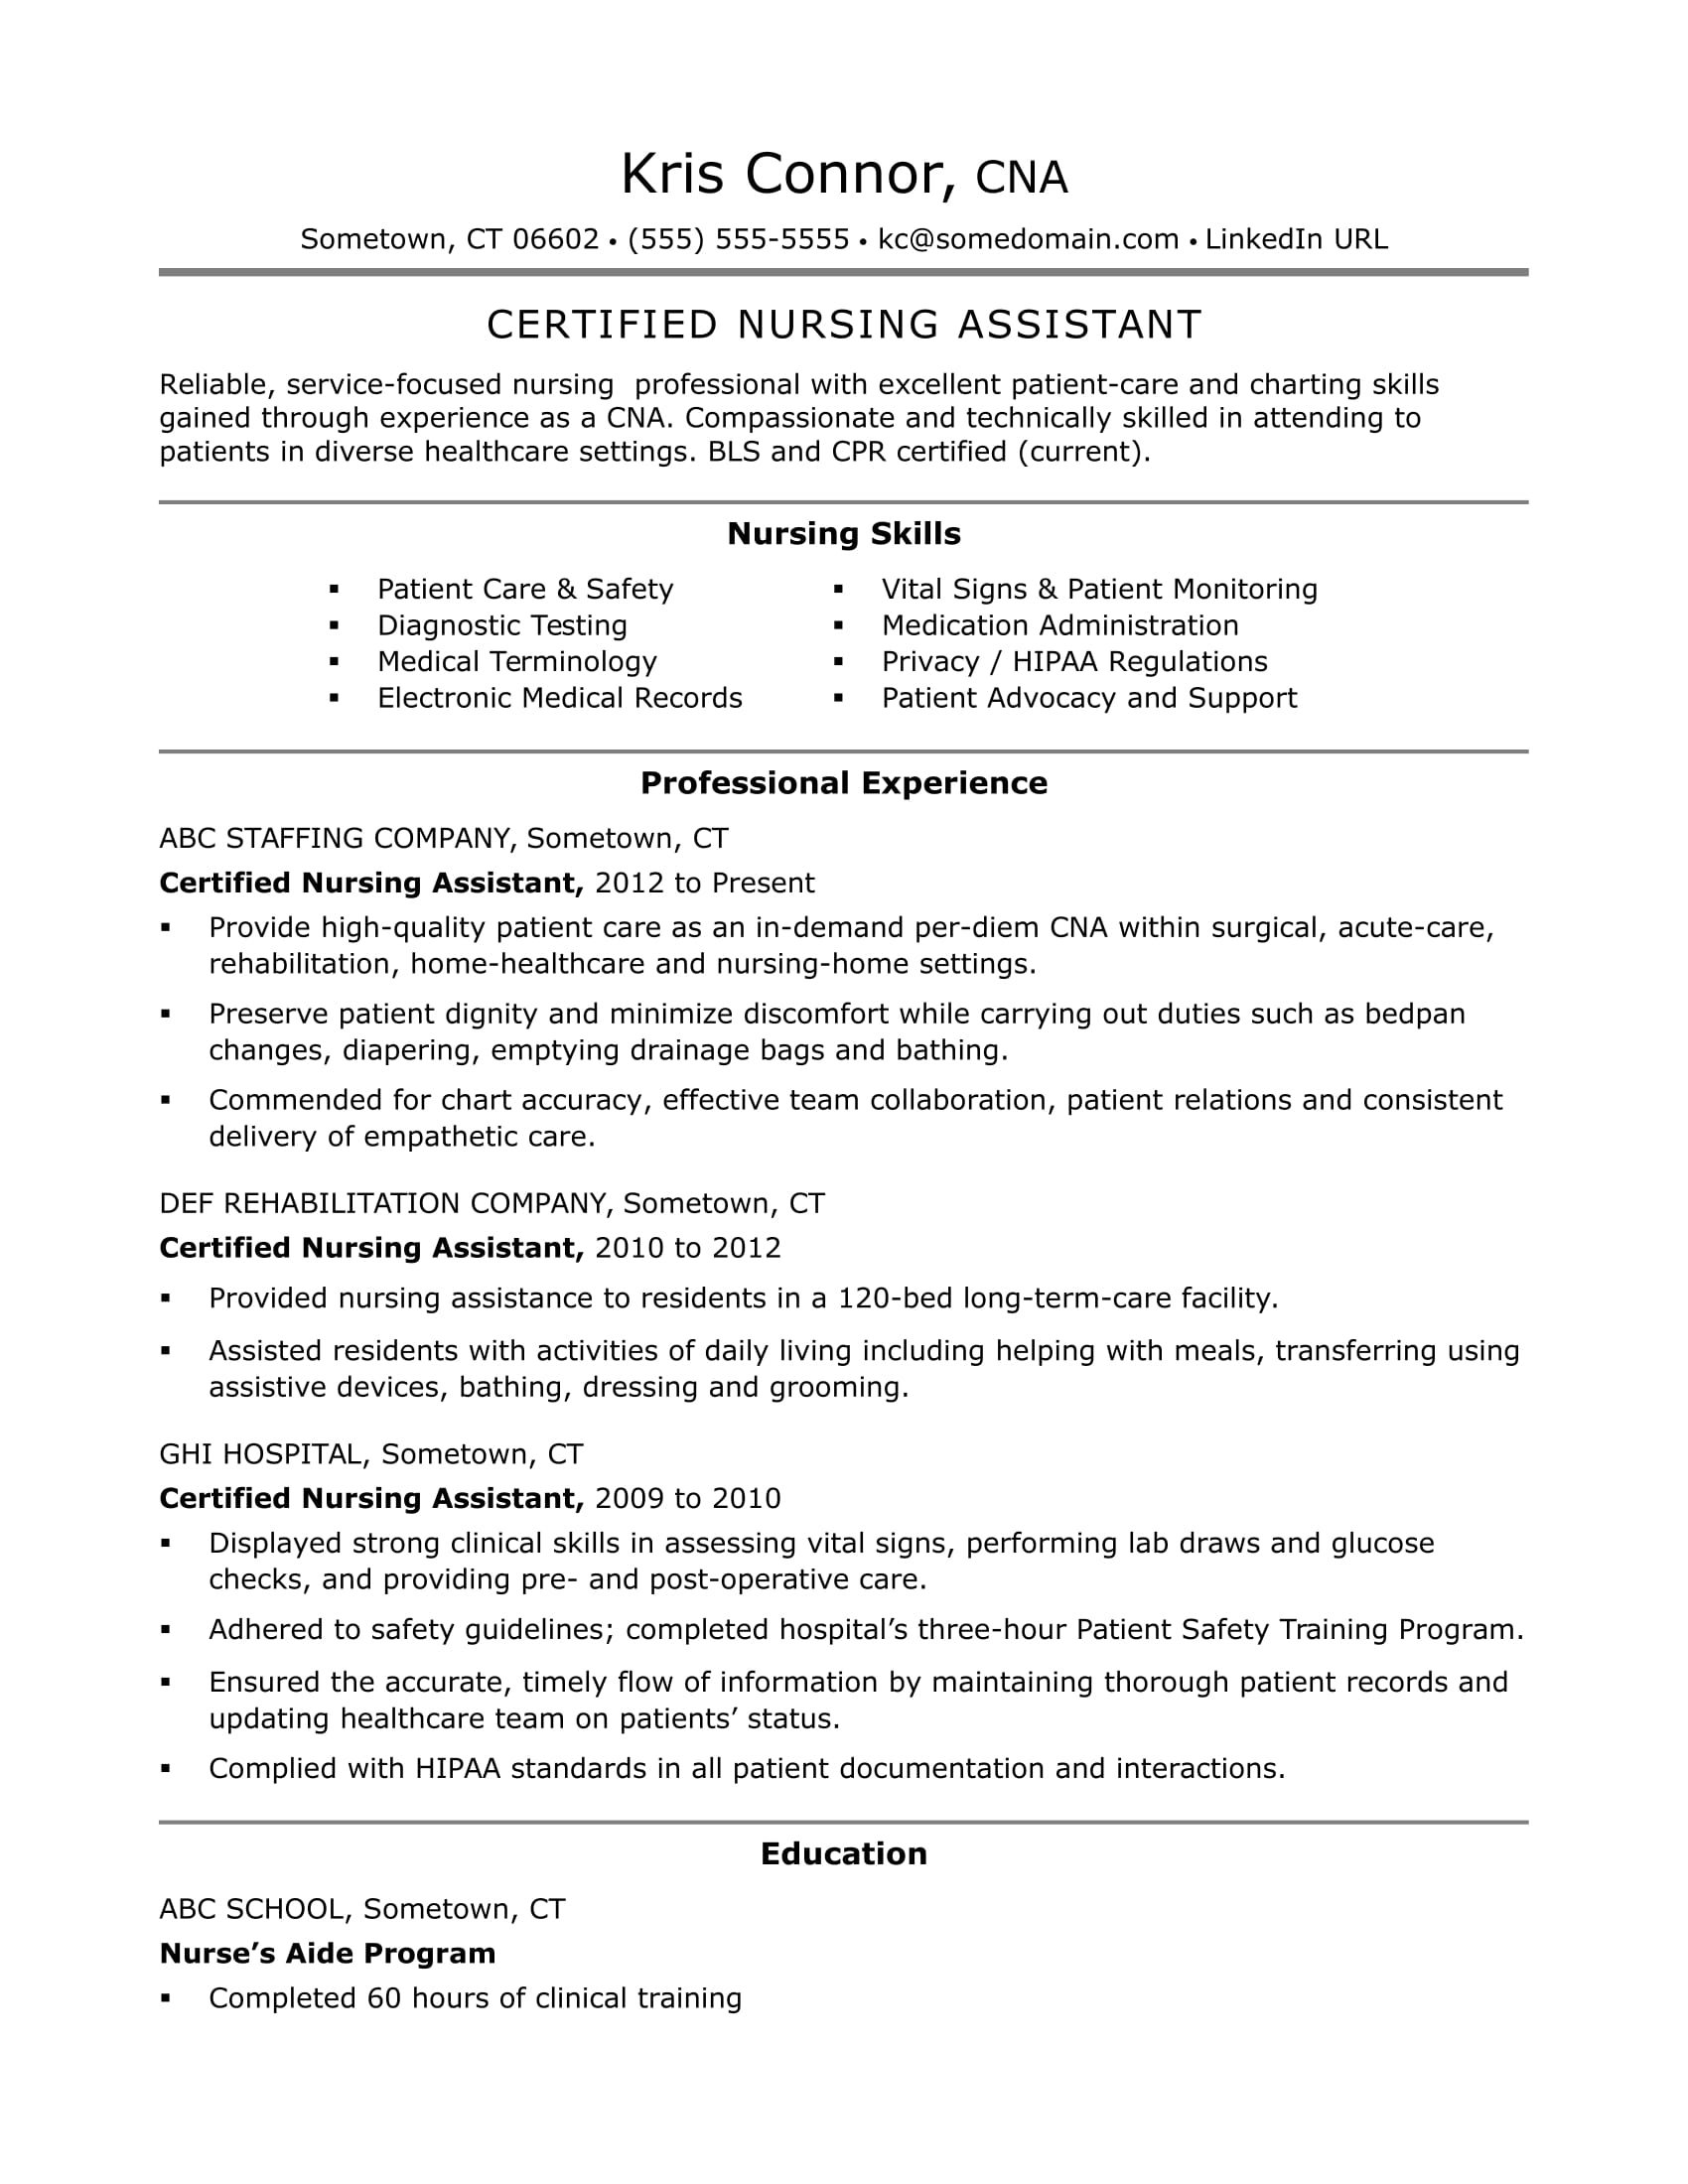 023 Certified Nursing Assistant Essay Example Archaicawful Hipaa Full